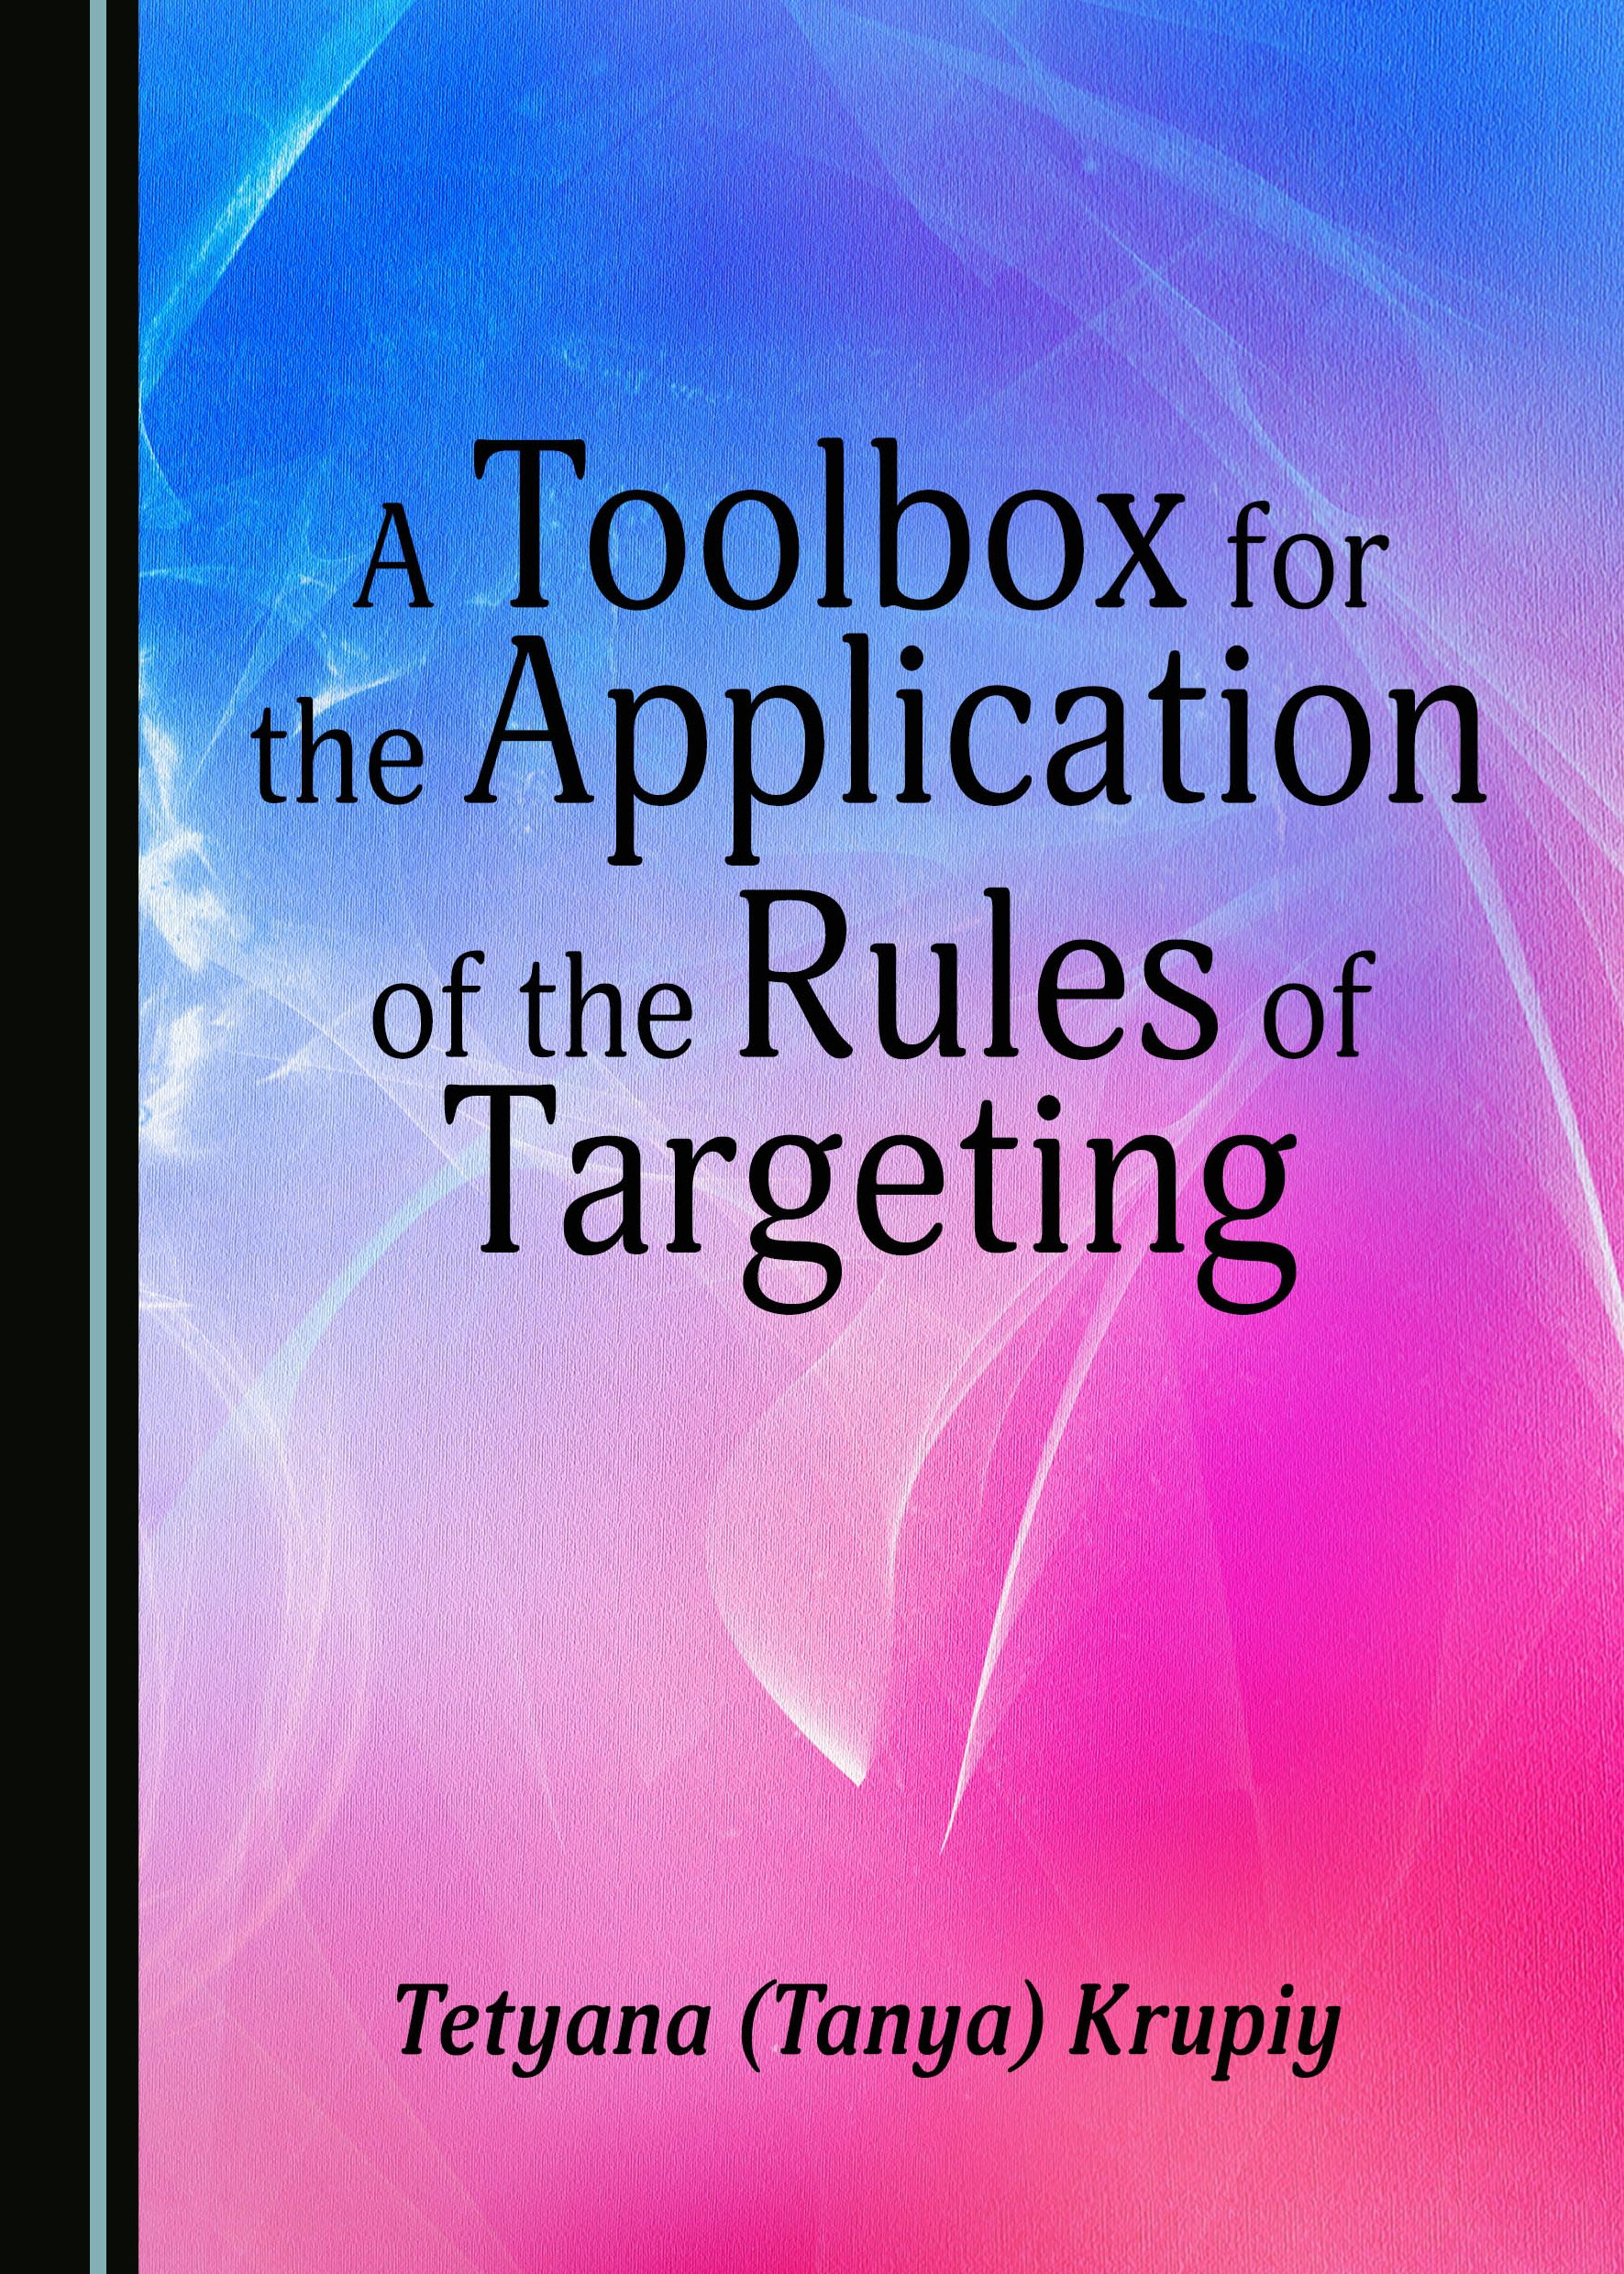 A Toolbox for the Application of the Rules of Targeting